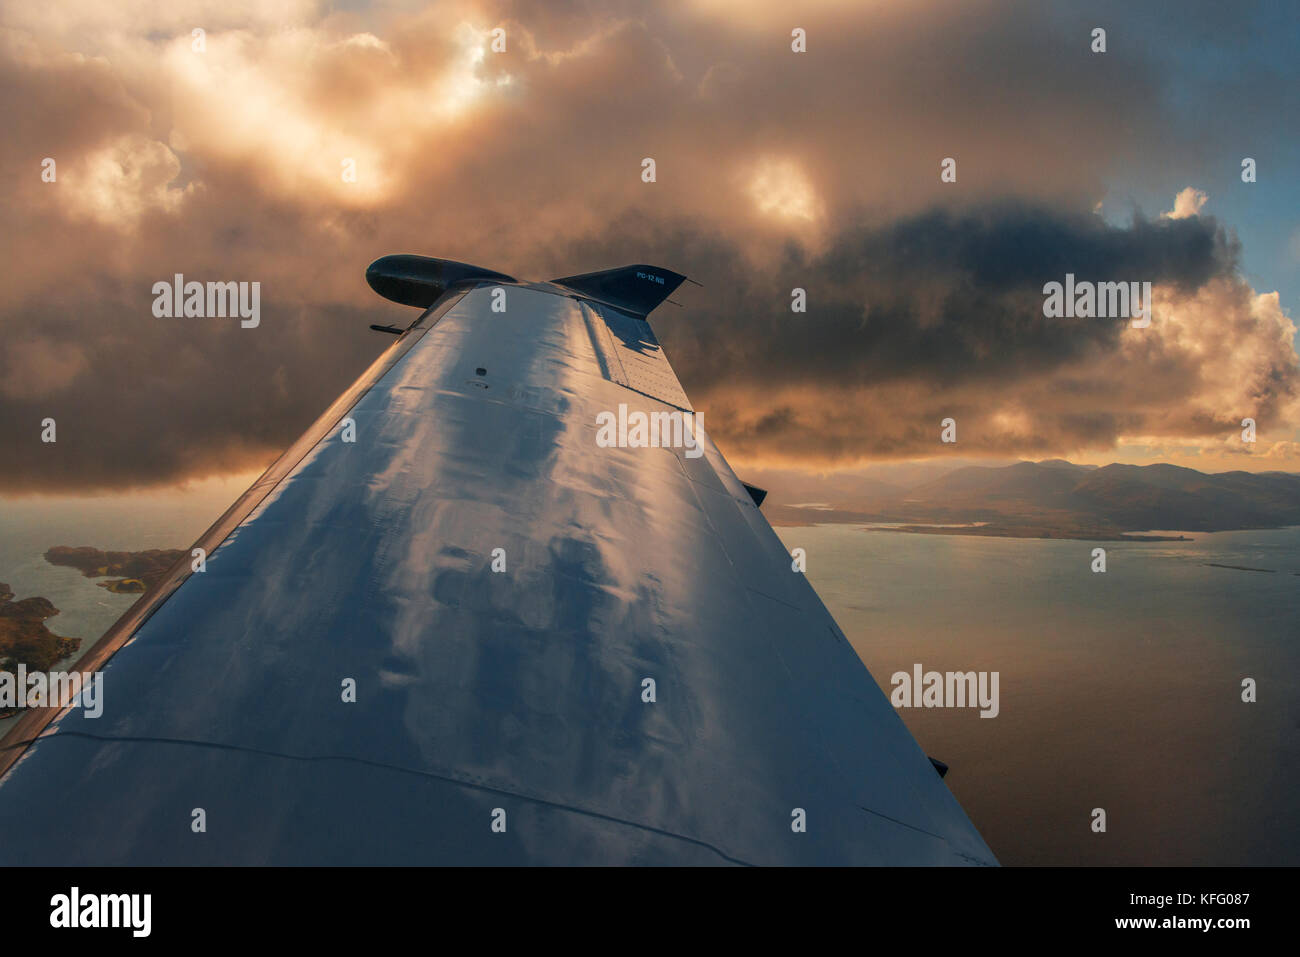 Close up detail of the wing of a Pilatus PC12 aircraft against a sunset cloudscape. - Stock Image